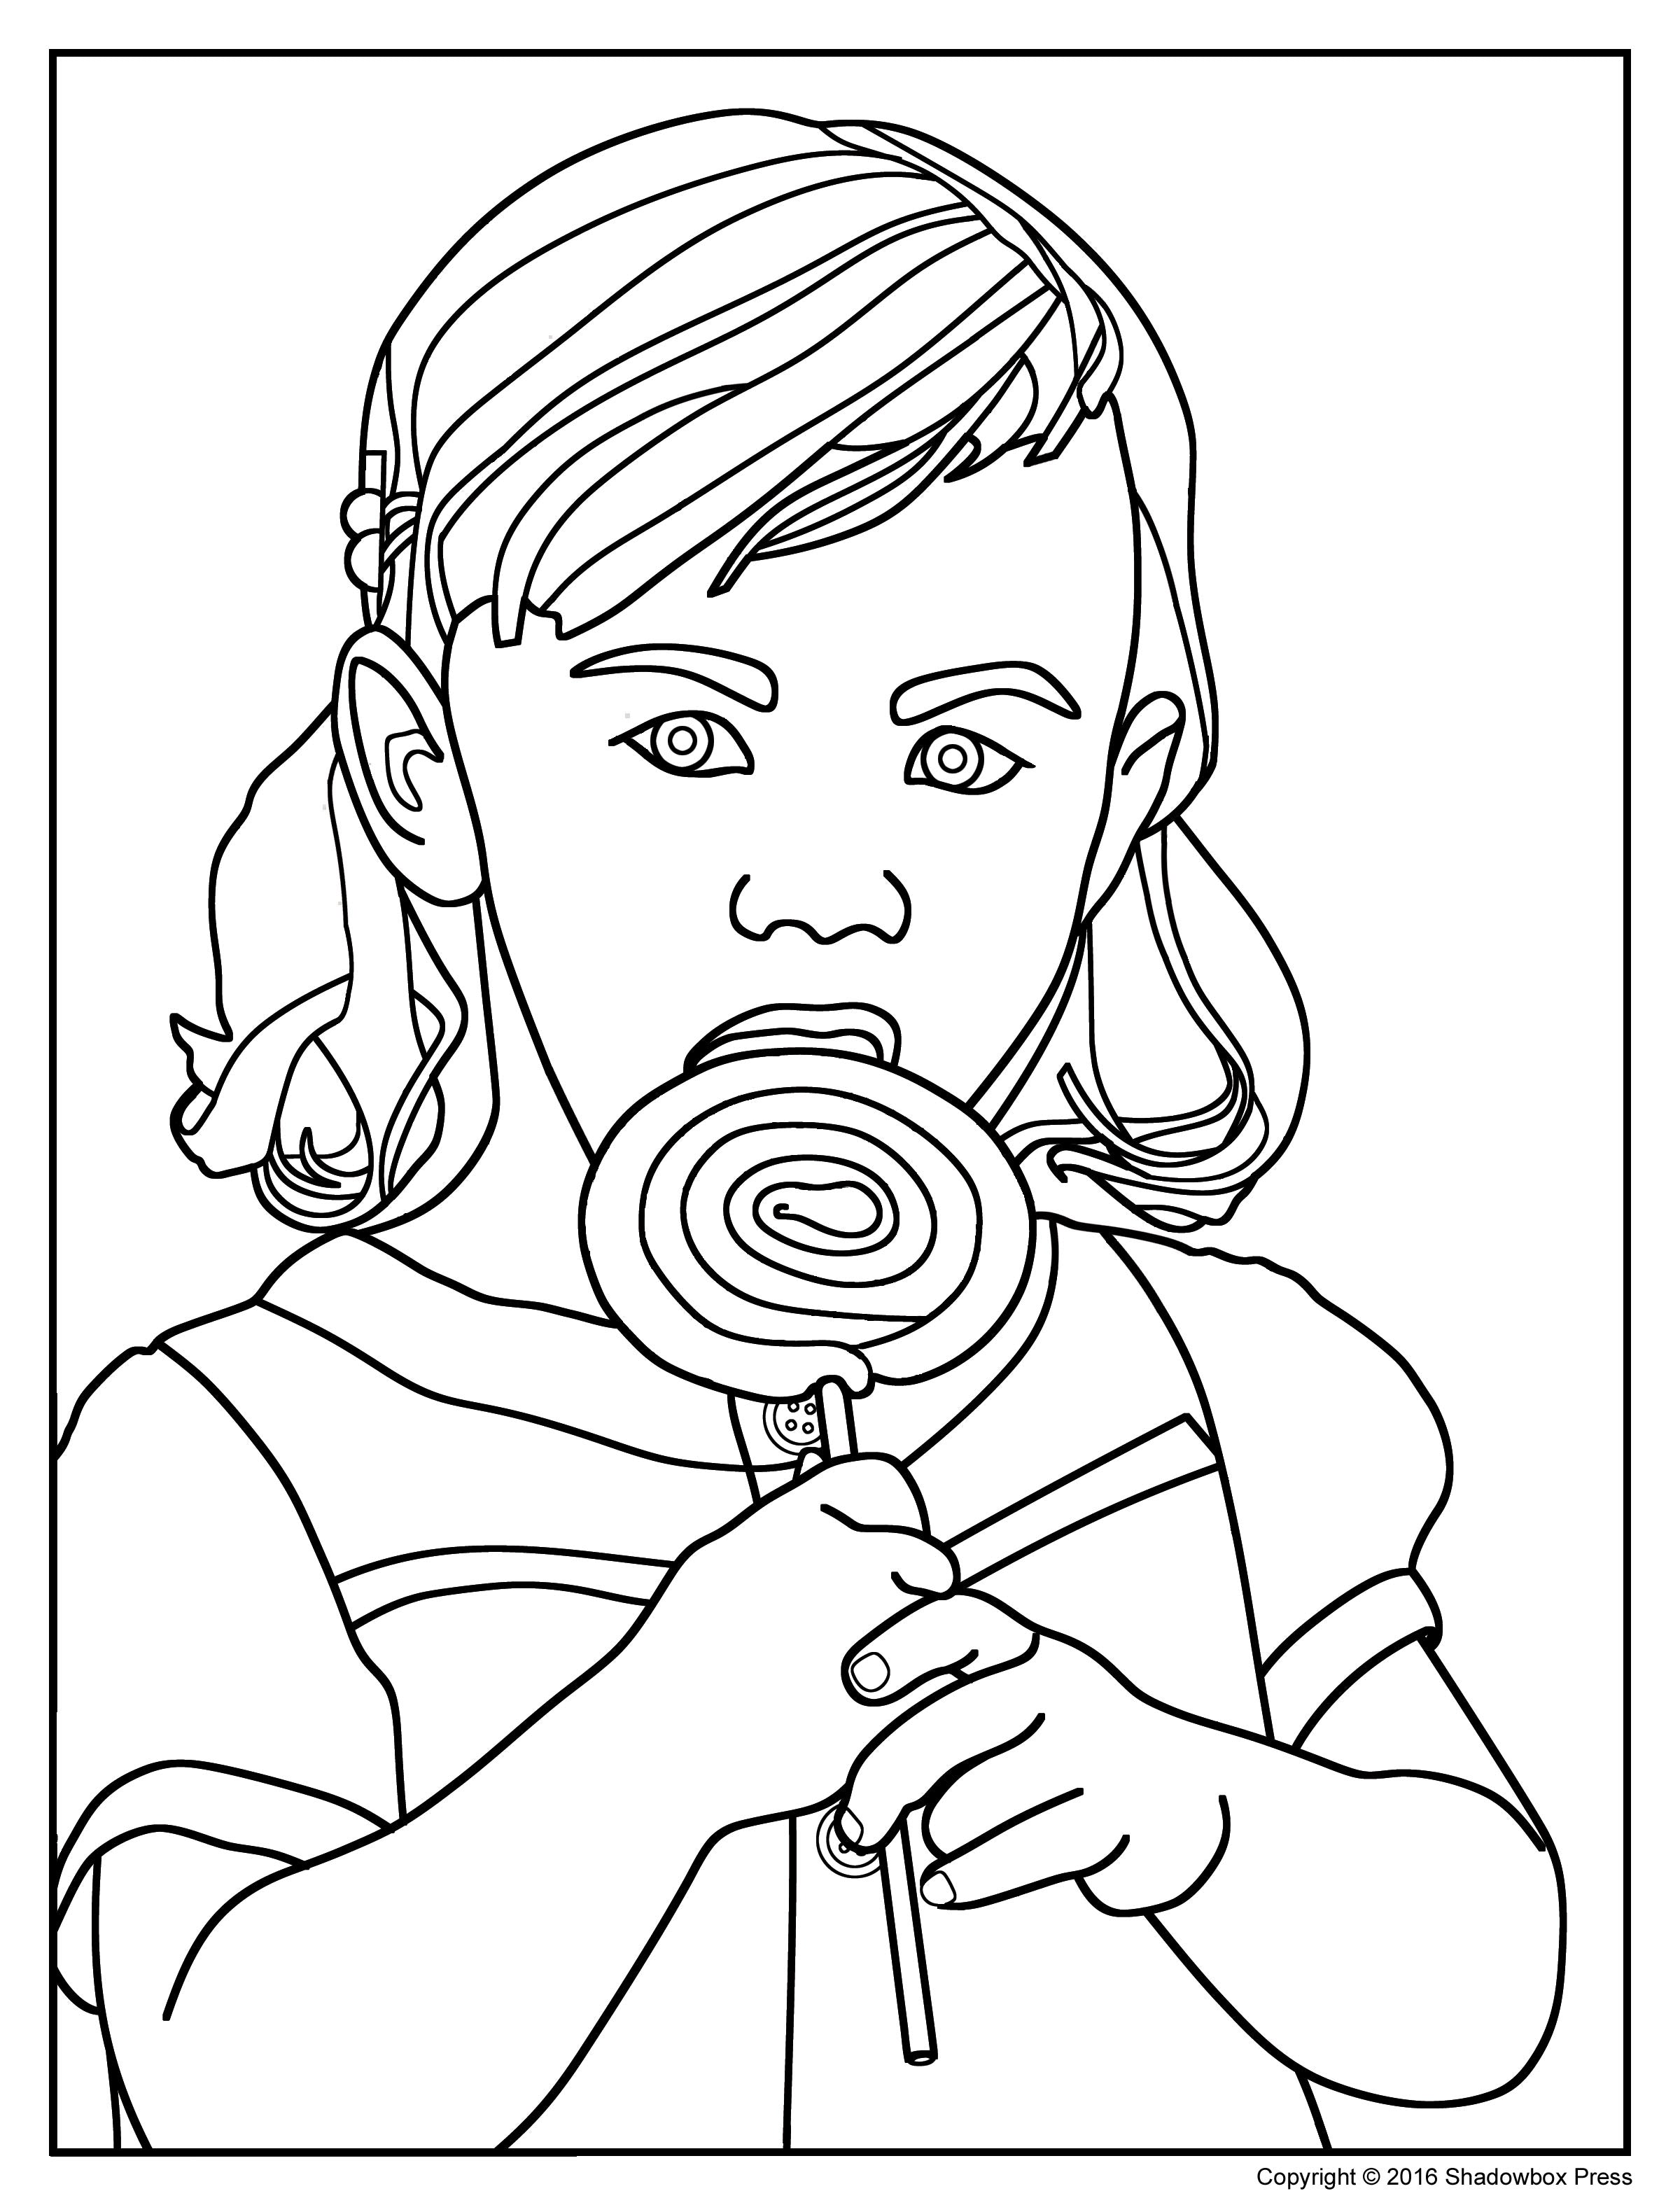 Coloring activities for seniors - Gumball Machine Coloring Page Gumball Machine Photograph